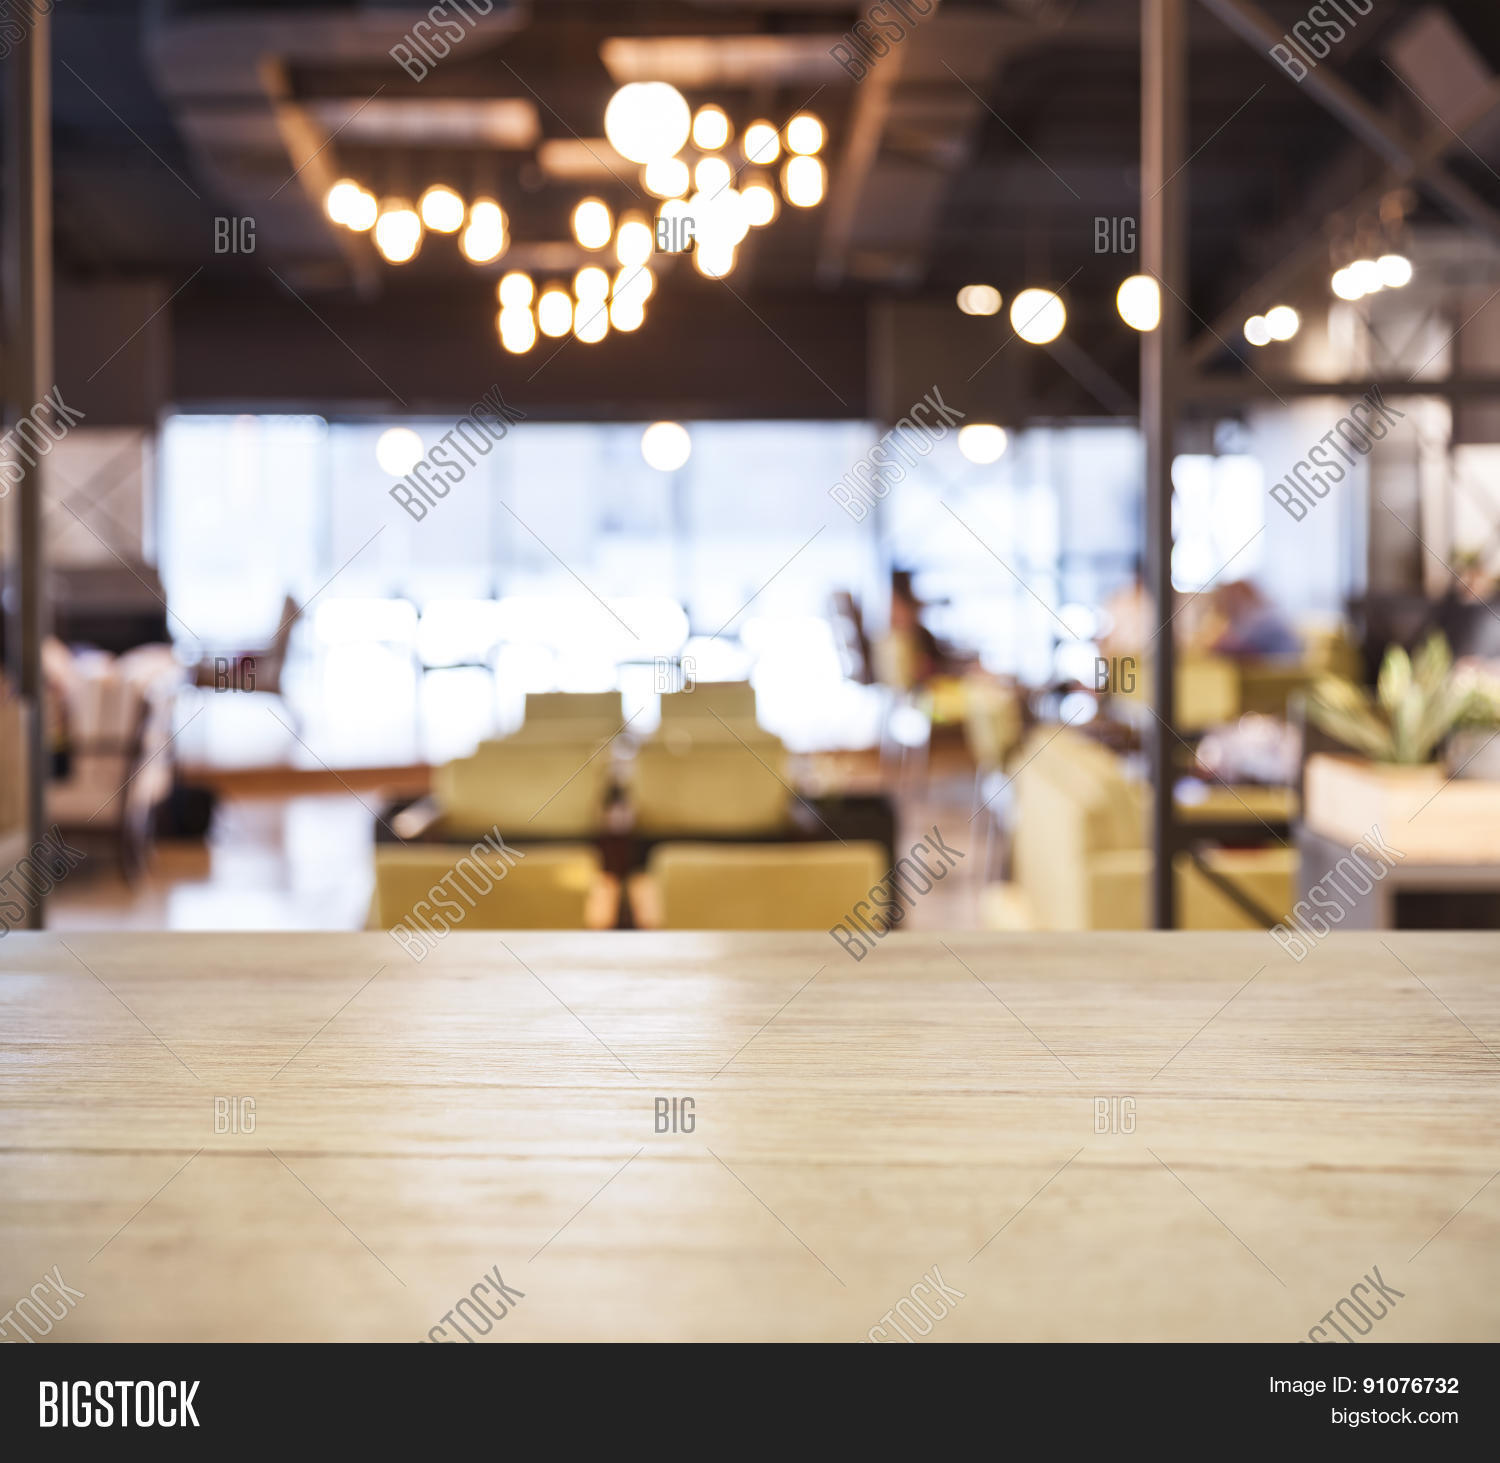 restaurant table top lighting. Table Top Counter Bar With Blurred Cafe Restaurant Background Lighting R